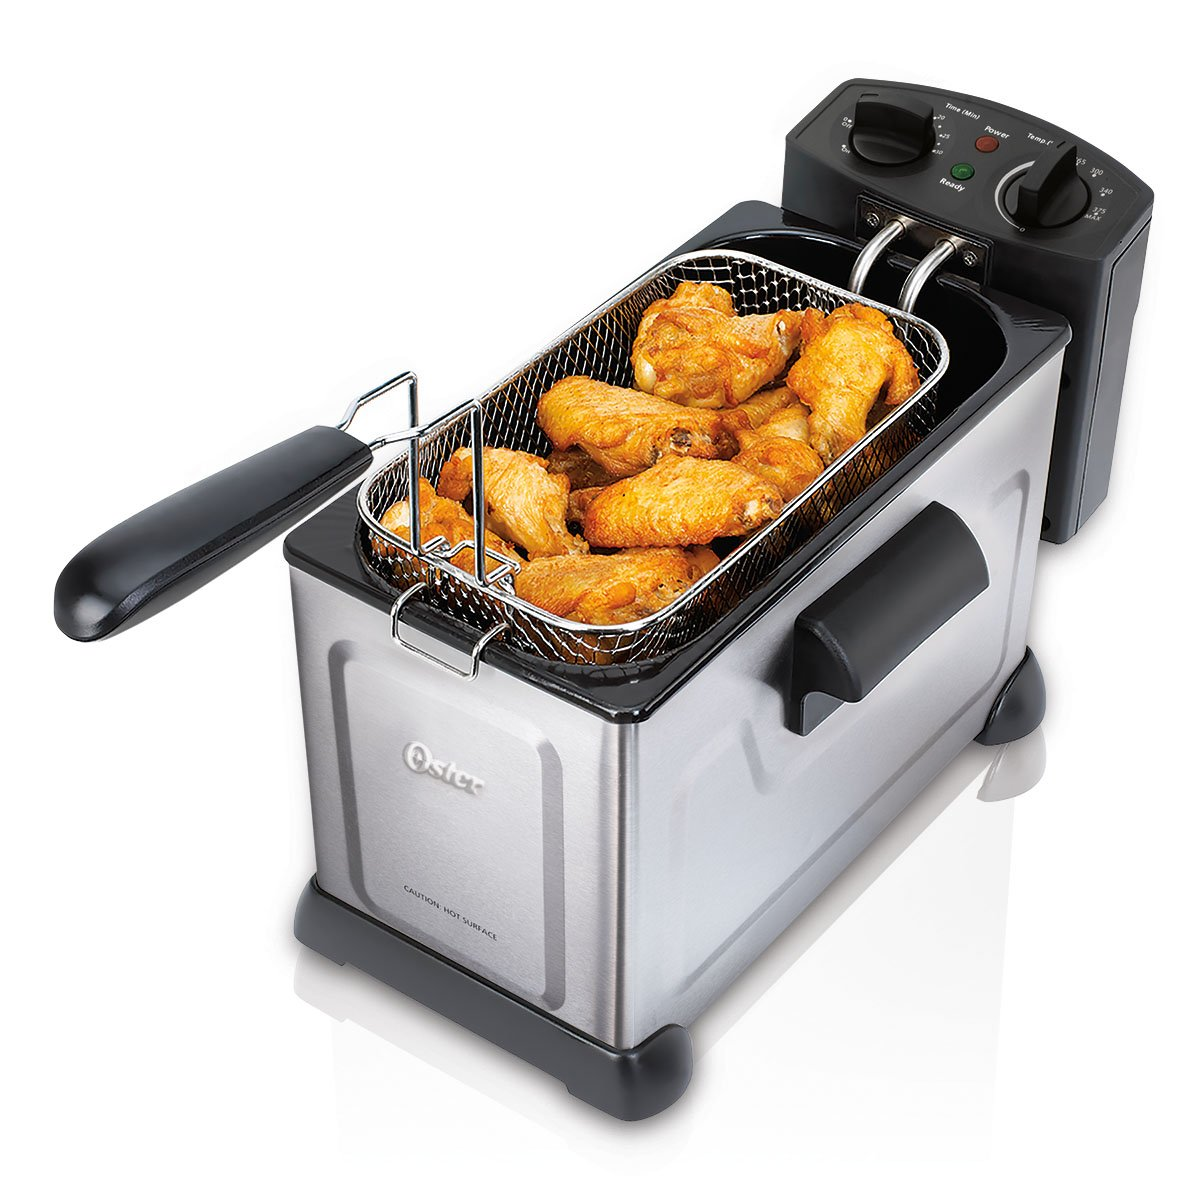 Oster CKSTDFZM37-SS1 Professional Style Stainless Steel Deep Fryer by Oster